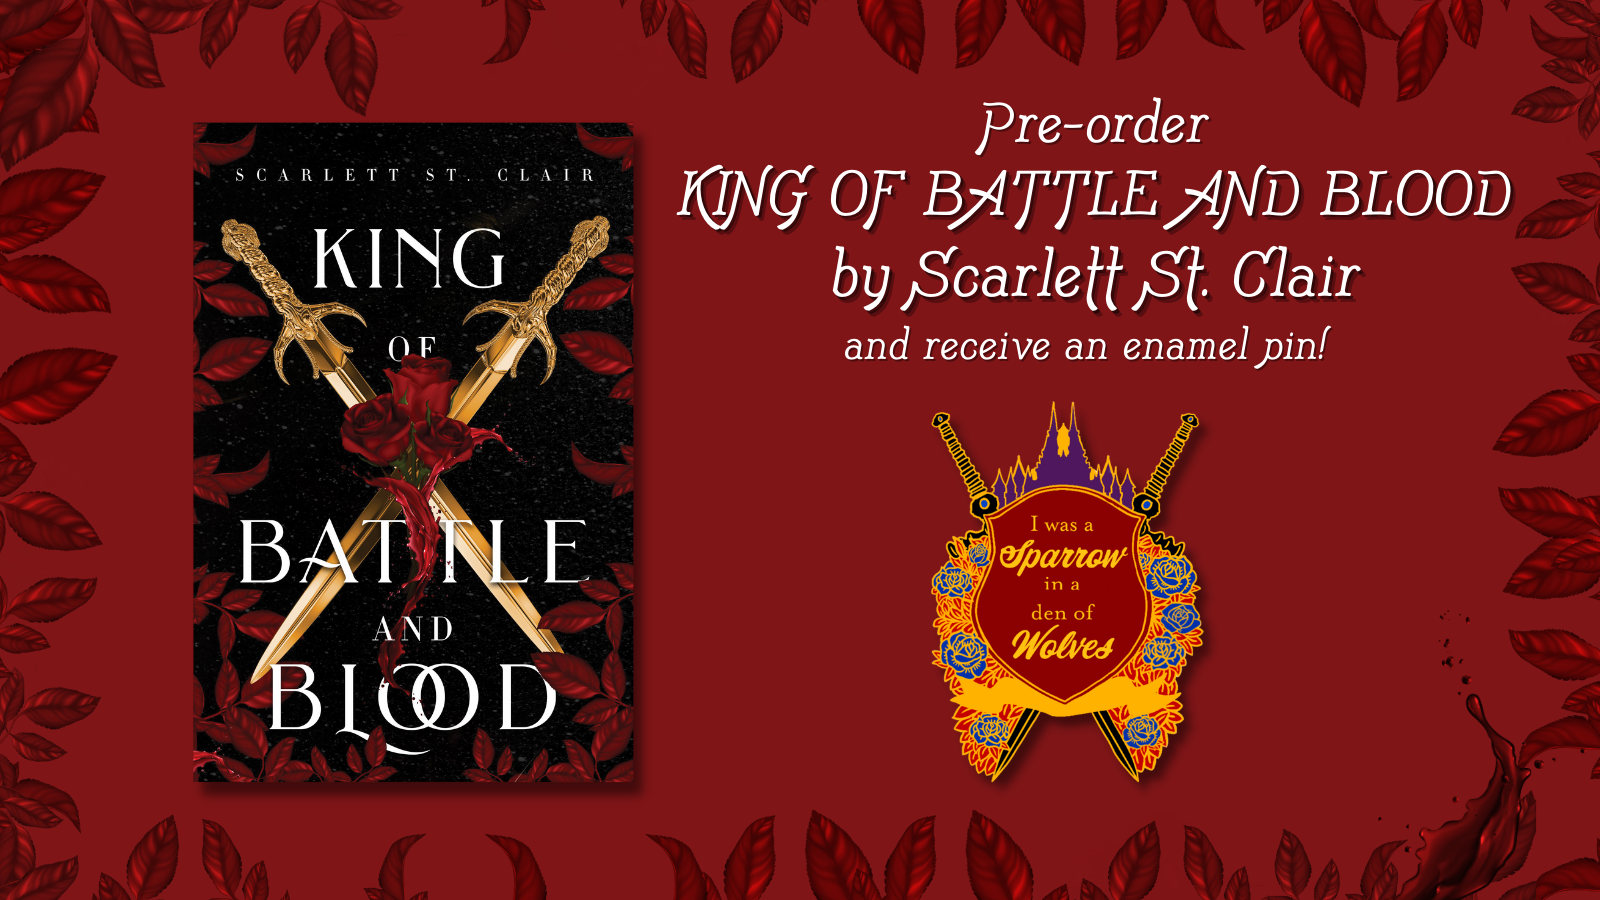 Pre-order King of Battle and Blood by Scarlett St. Clair and receive an enamel pin!